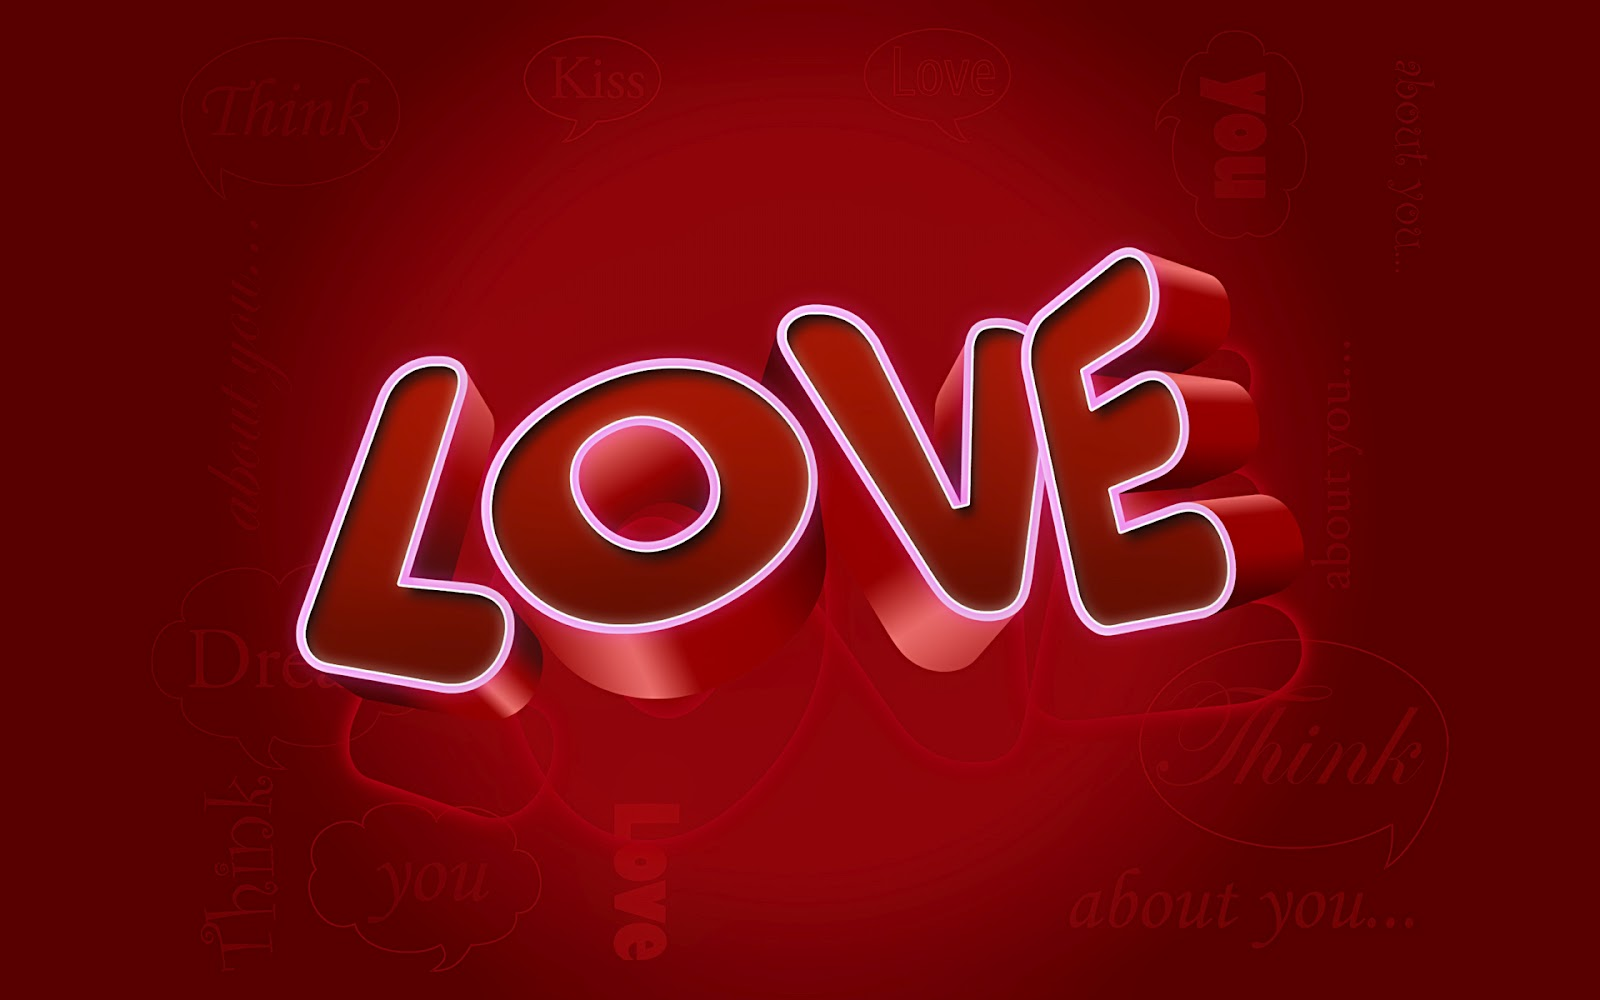 Wallpaper Love You : Wallpaper Desk : I love you wallpaper, i love you wallpapersWallpaper Desk